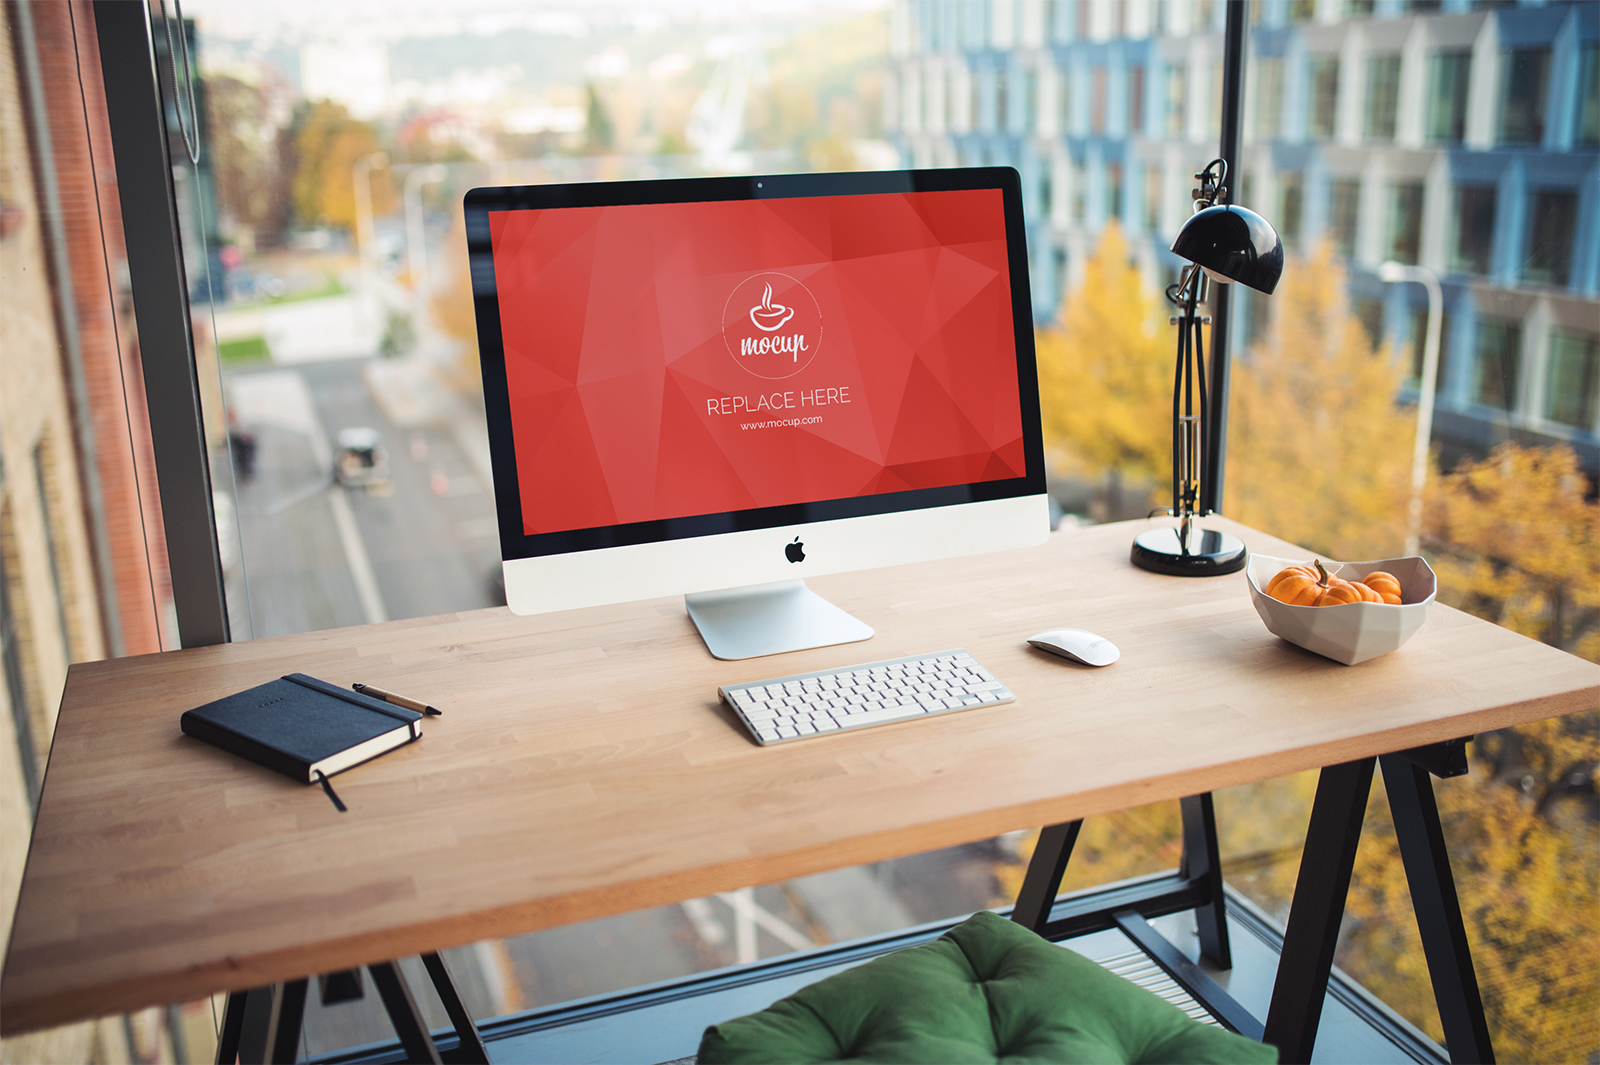 Free PSD Mockup iMac Business Office